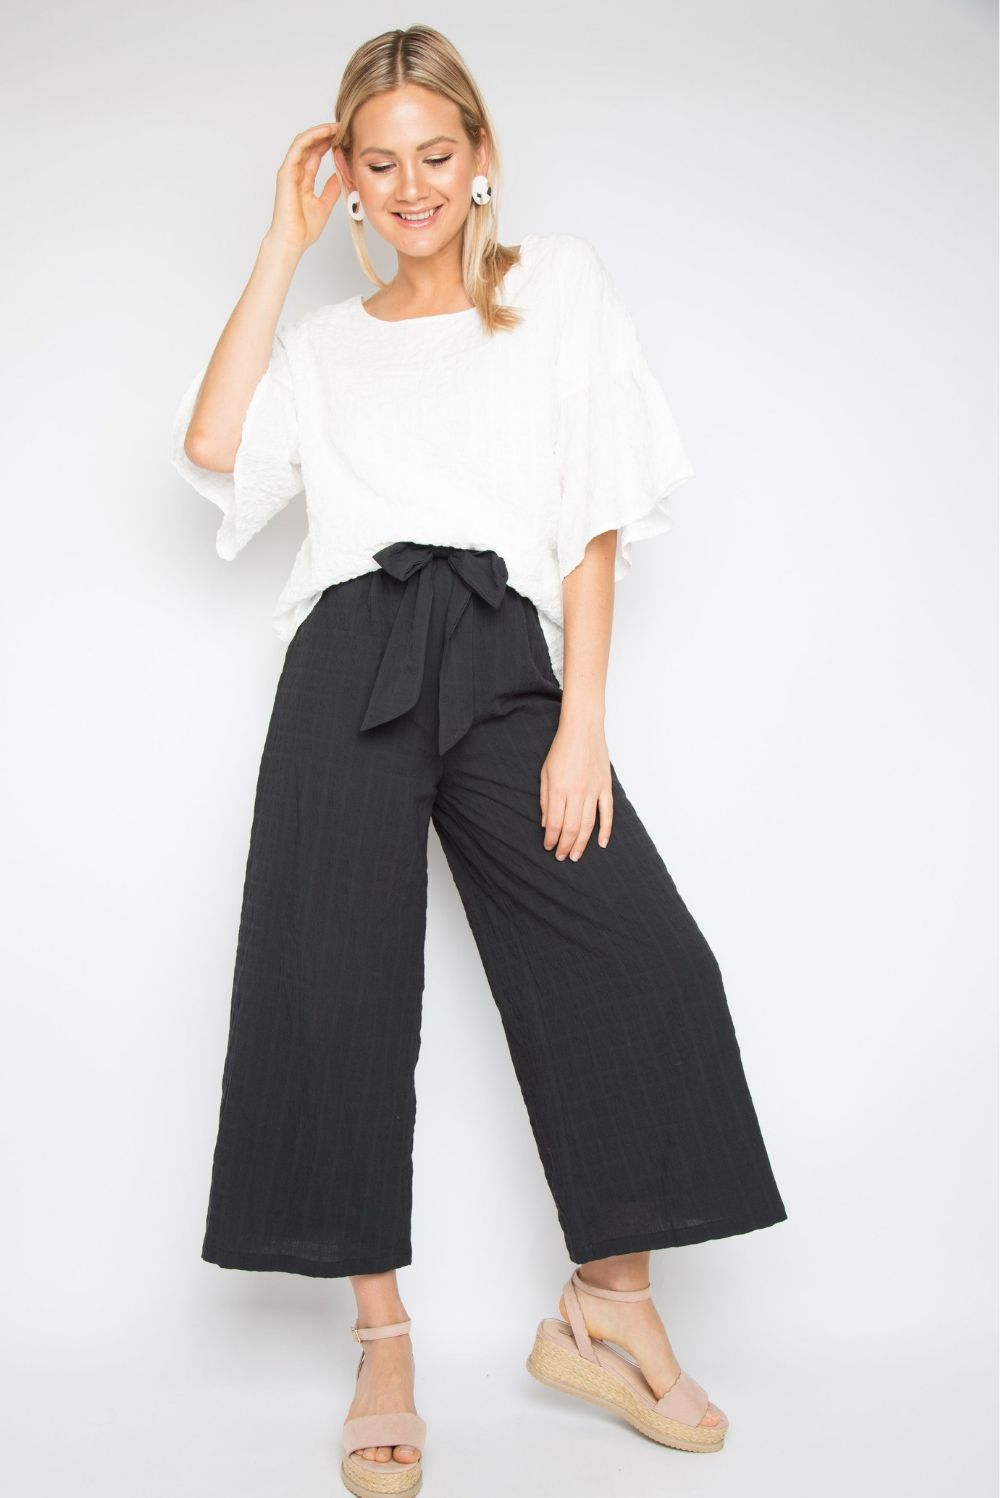 RO Corinth 3/4 Elastic Pant In Black